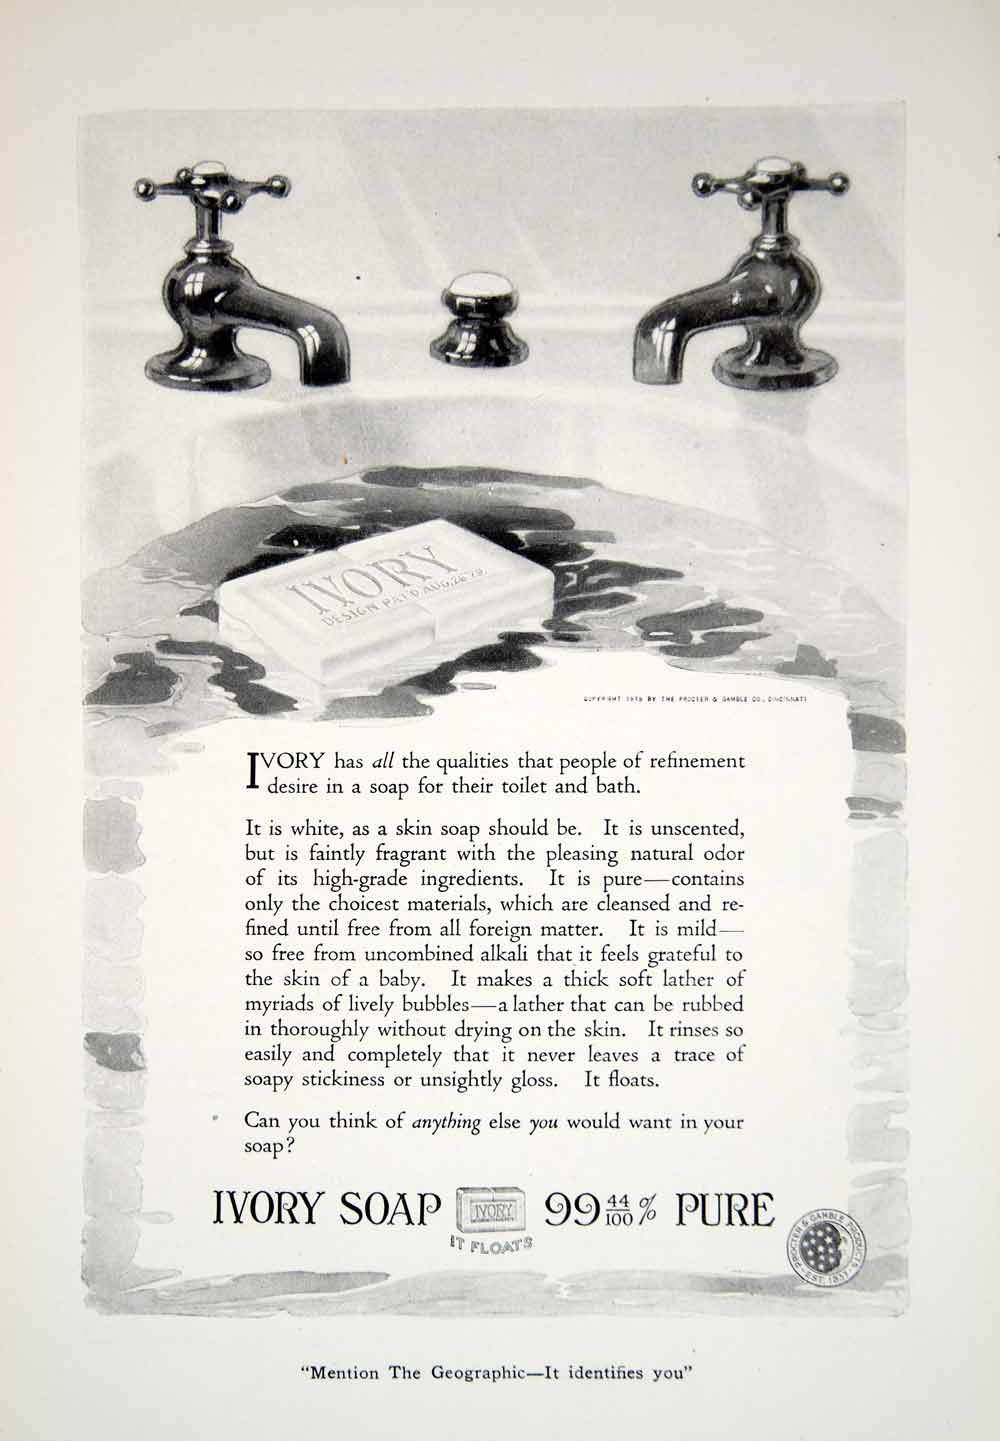 1919 Ad Proctor Gamble Hygiene Ivory Soap Cleaning Toilet Sink Washing YNG4